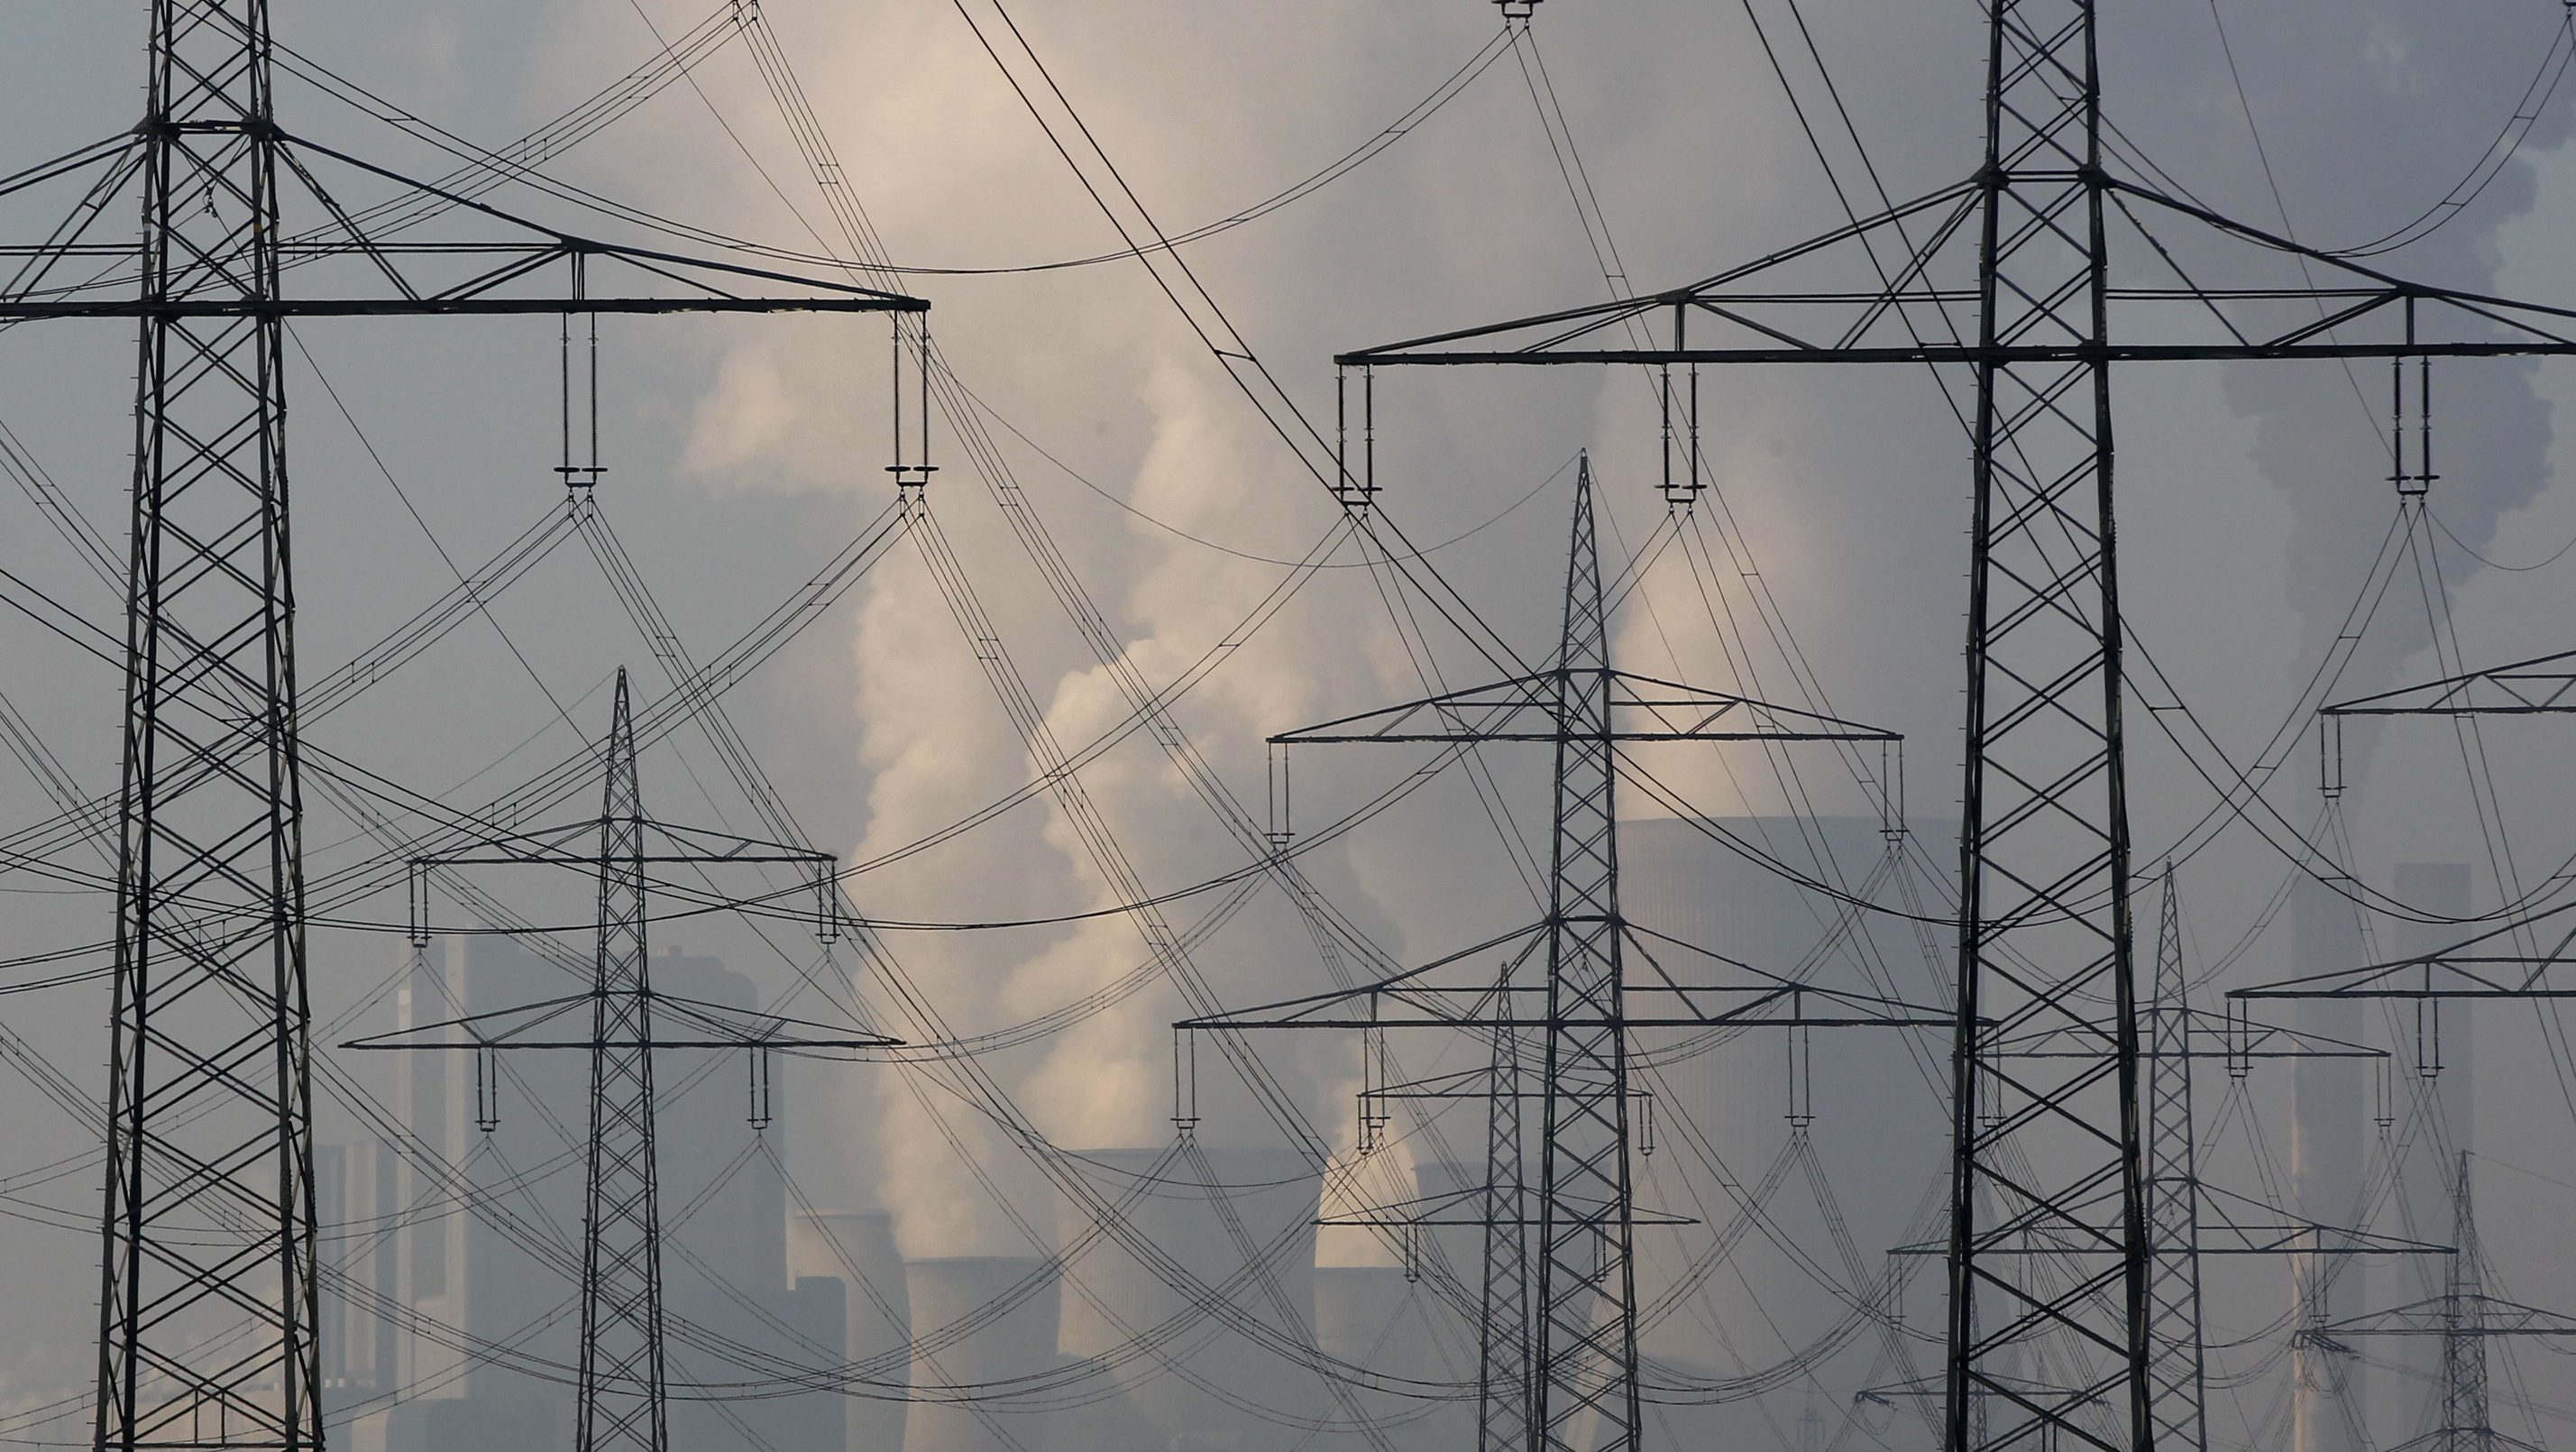 Chinese Utility Wiring Electrical Diagrams Harness Wire Clarion Rdx555d The World Is Abandoning Coal Fired Electricity At An Astonishing